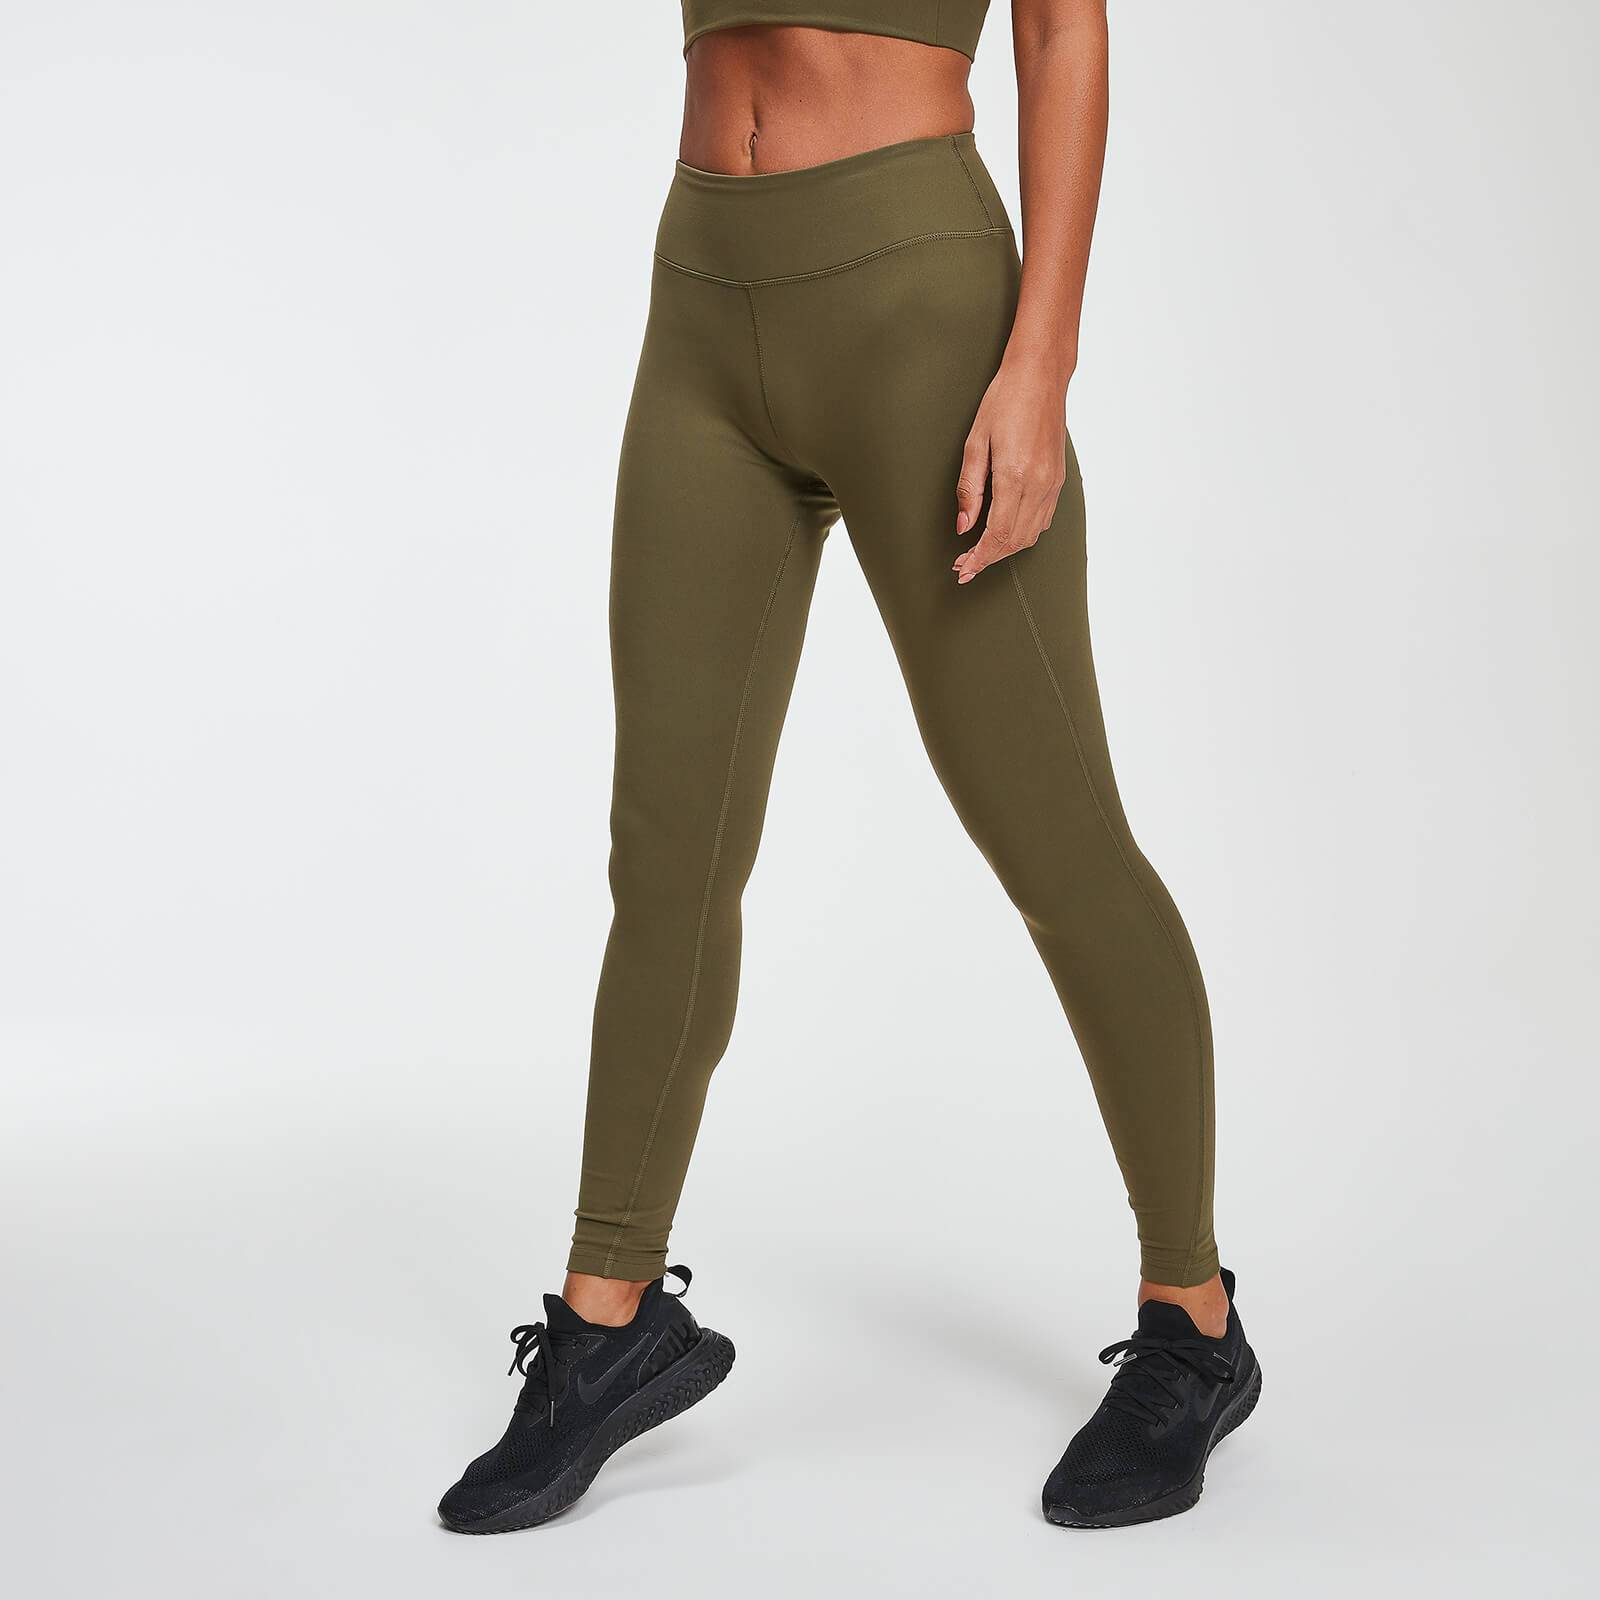 Myprotein Leggings Power - Avocado - XL